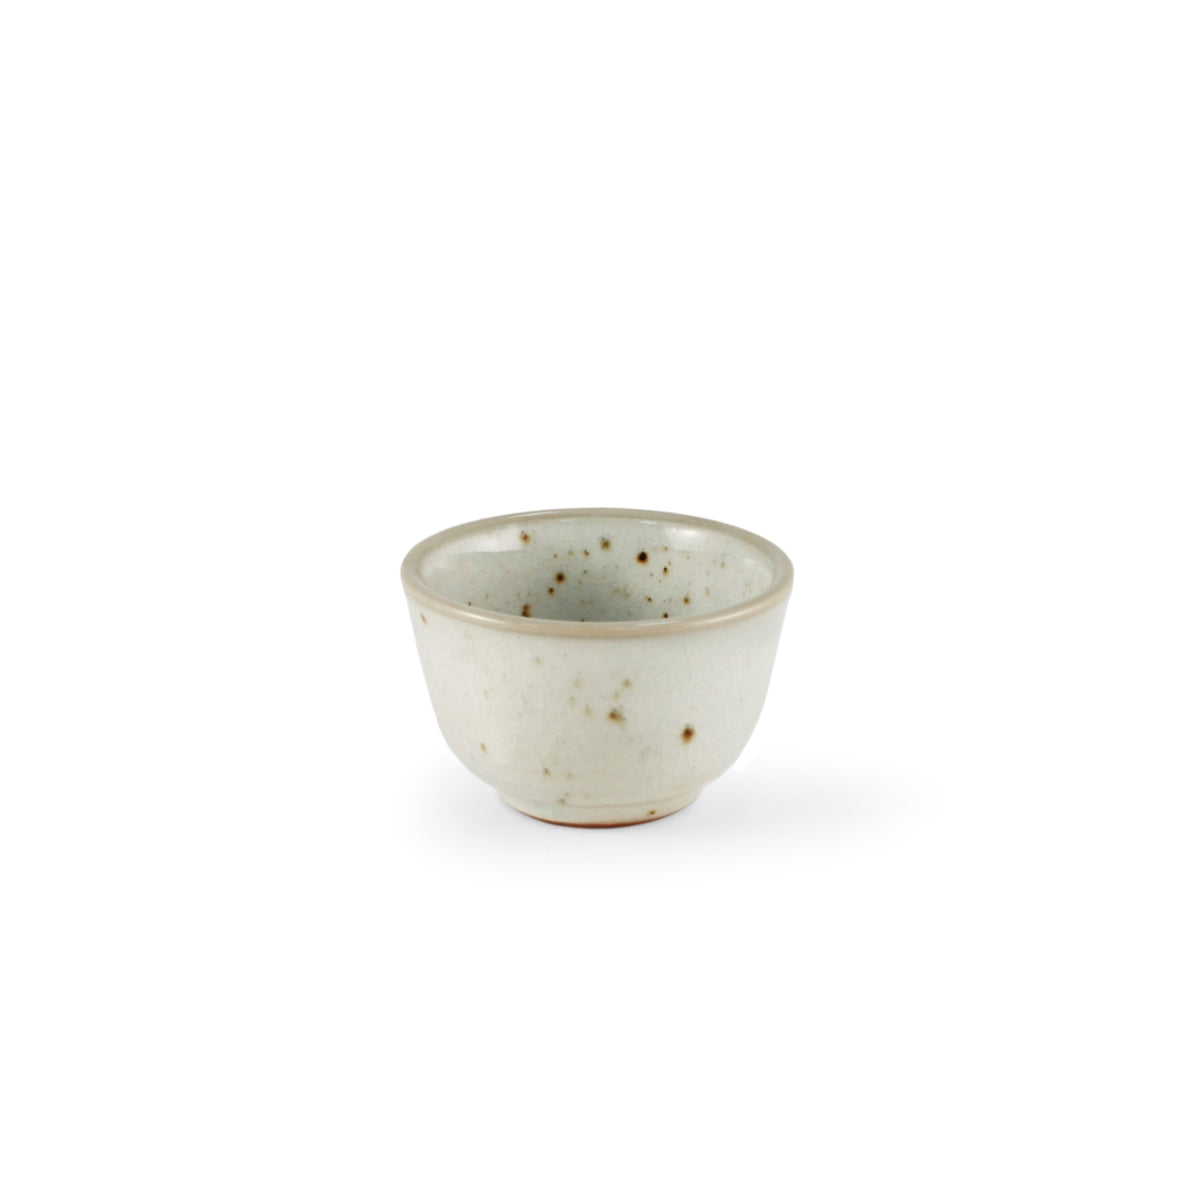 Cracked Glaze Ceramic Sake Cup 2.2 fl oz